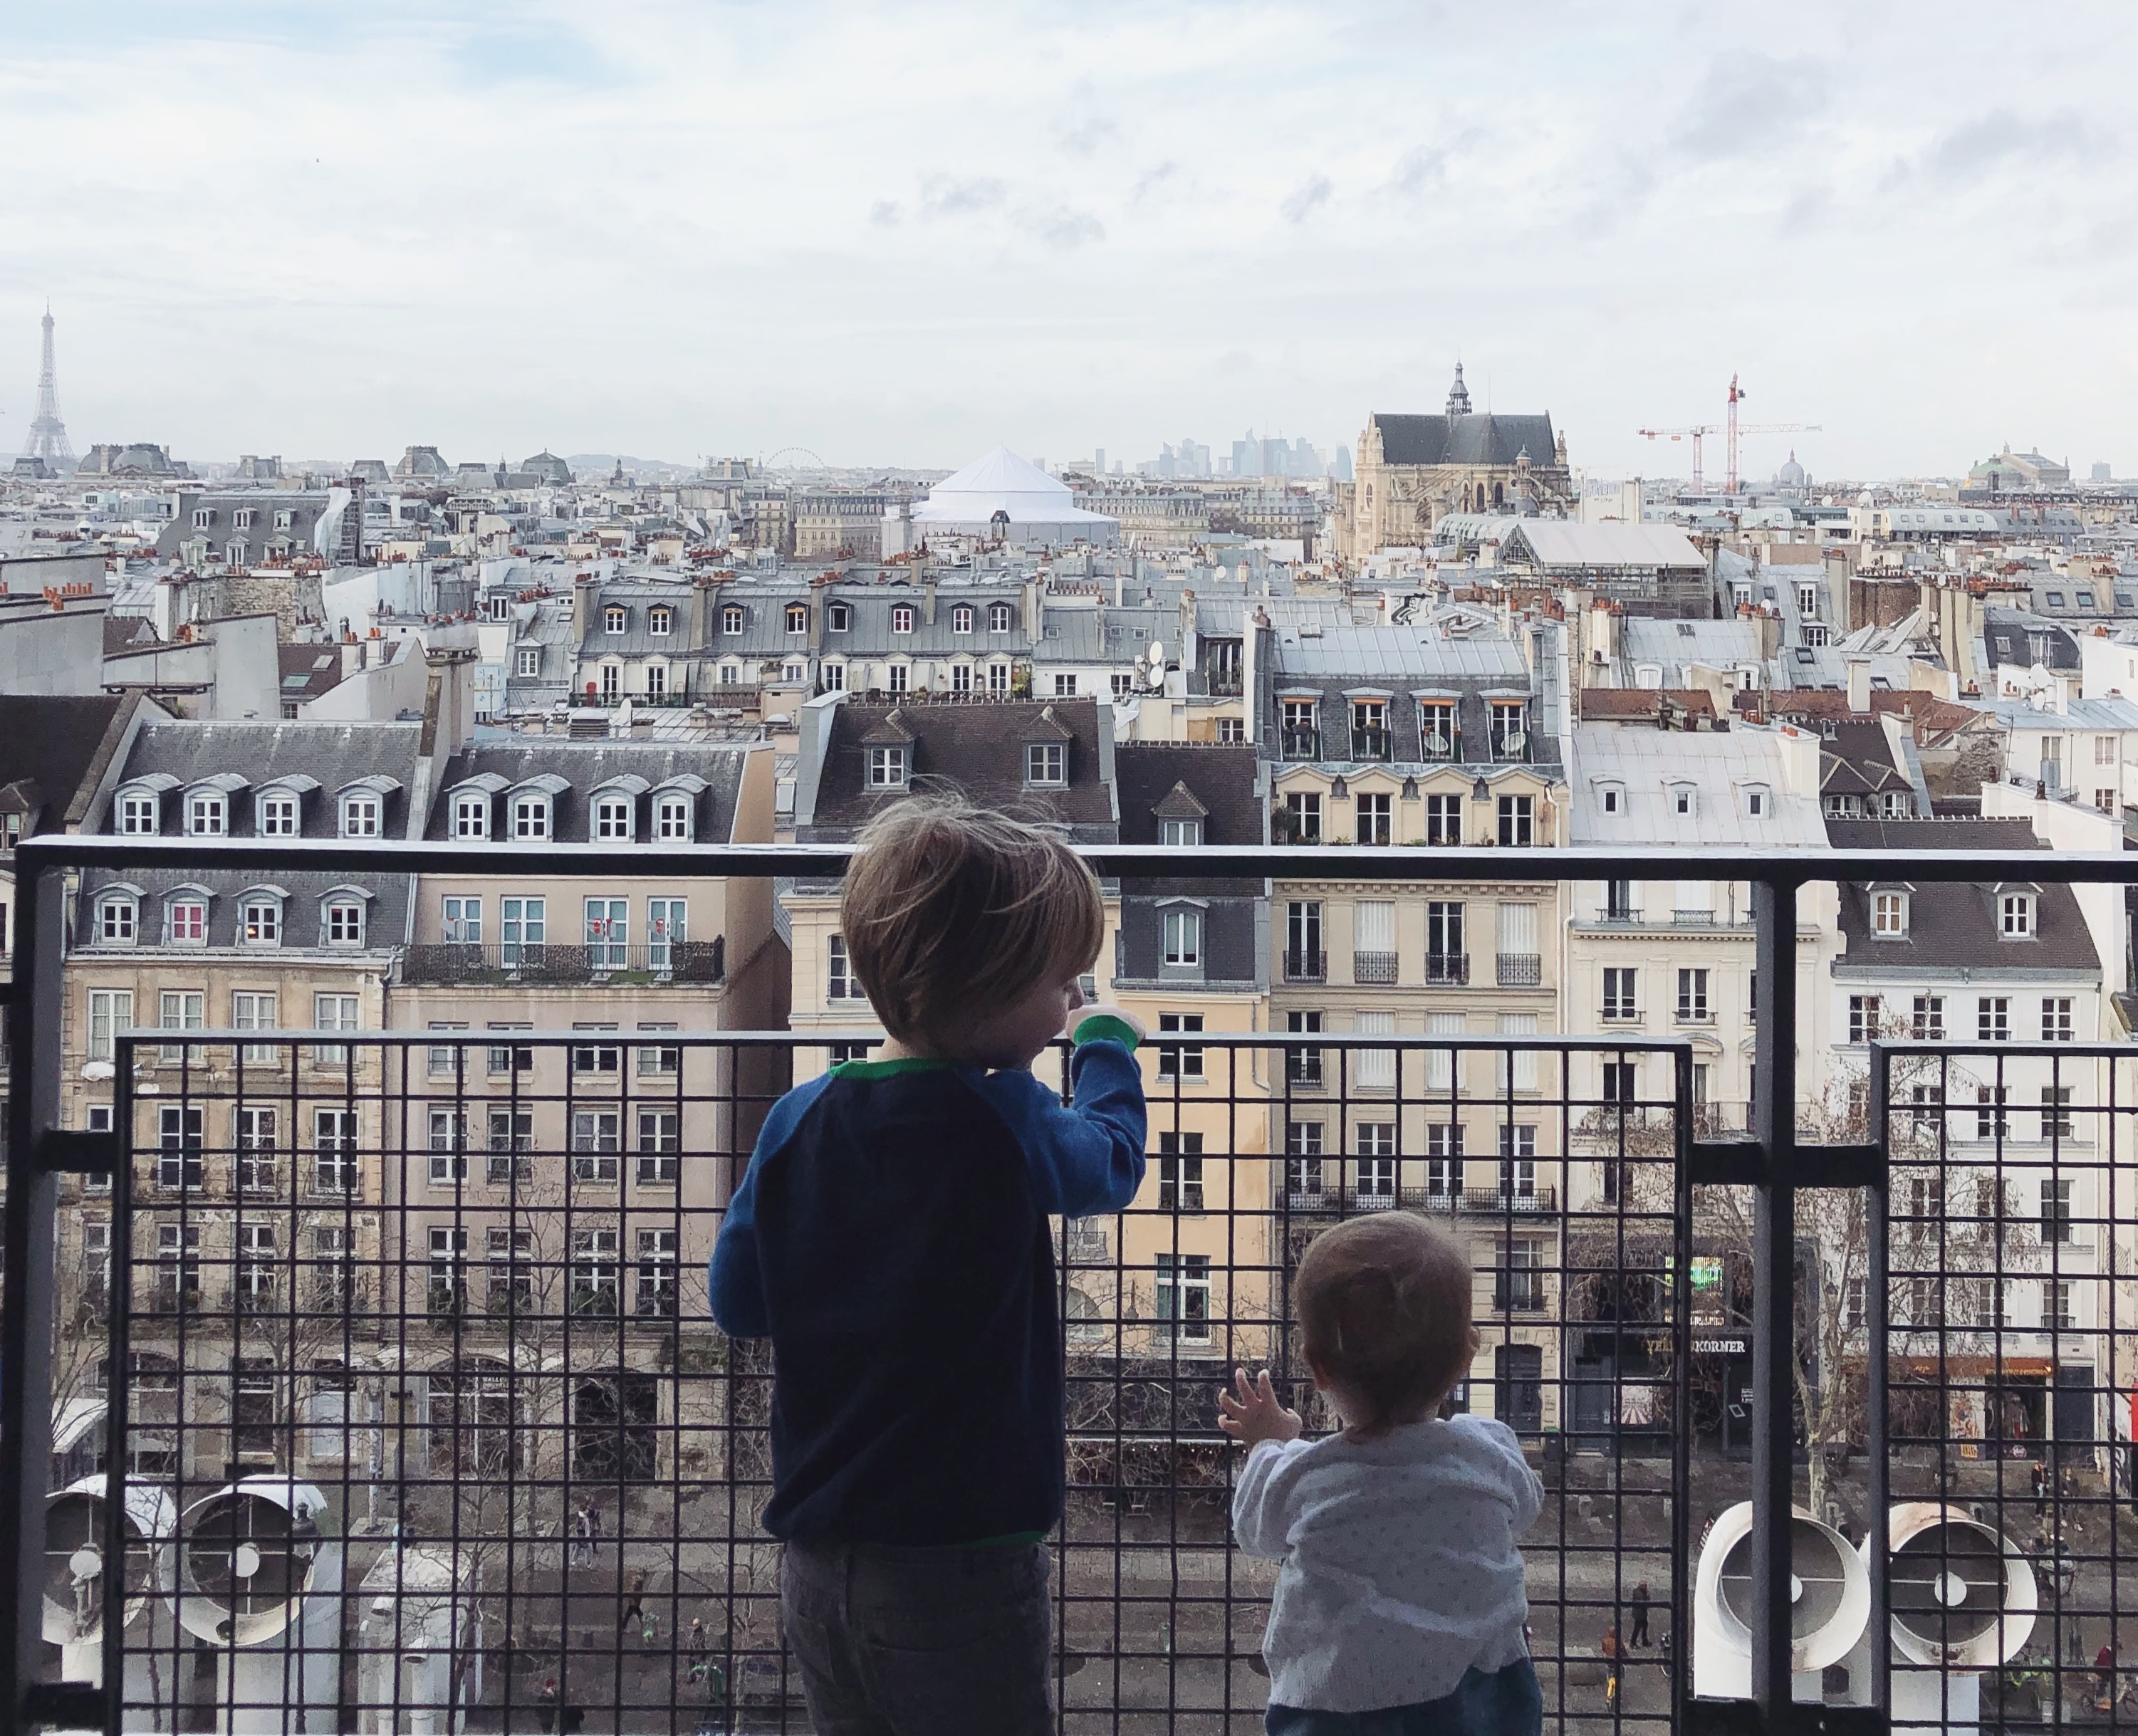 Here's a great list of museums to hit up in Paris if you're traveling with young kids.